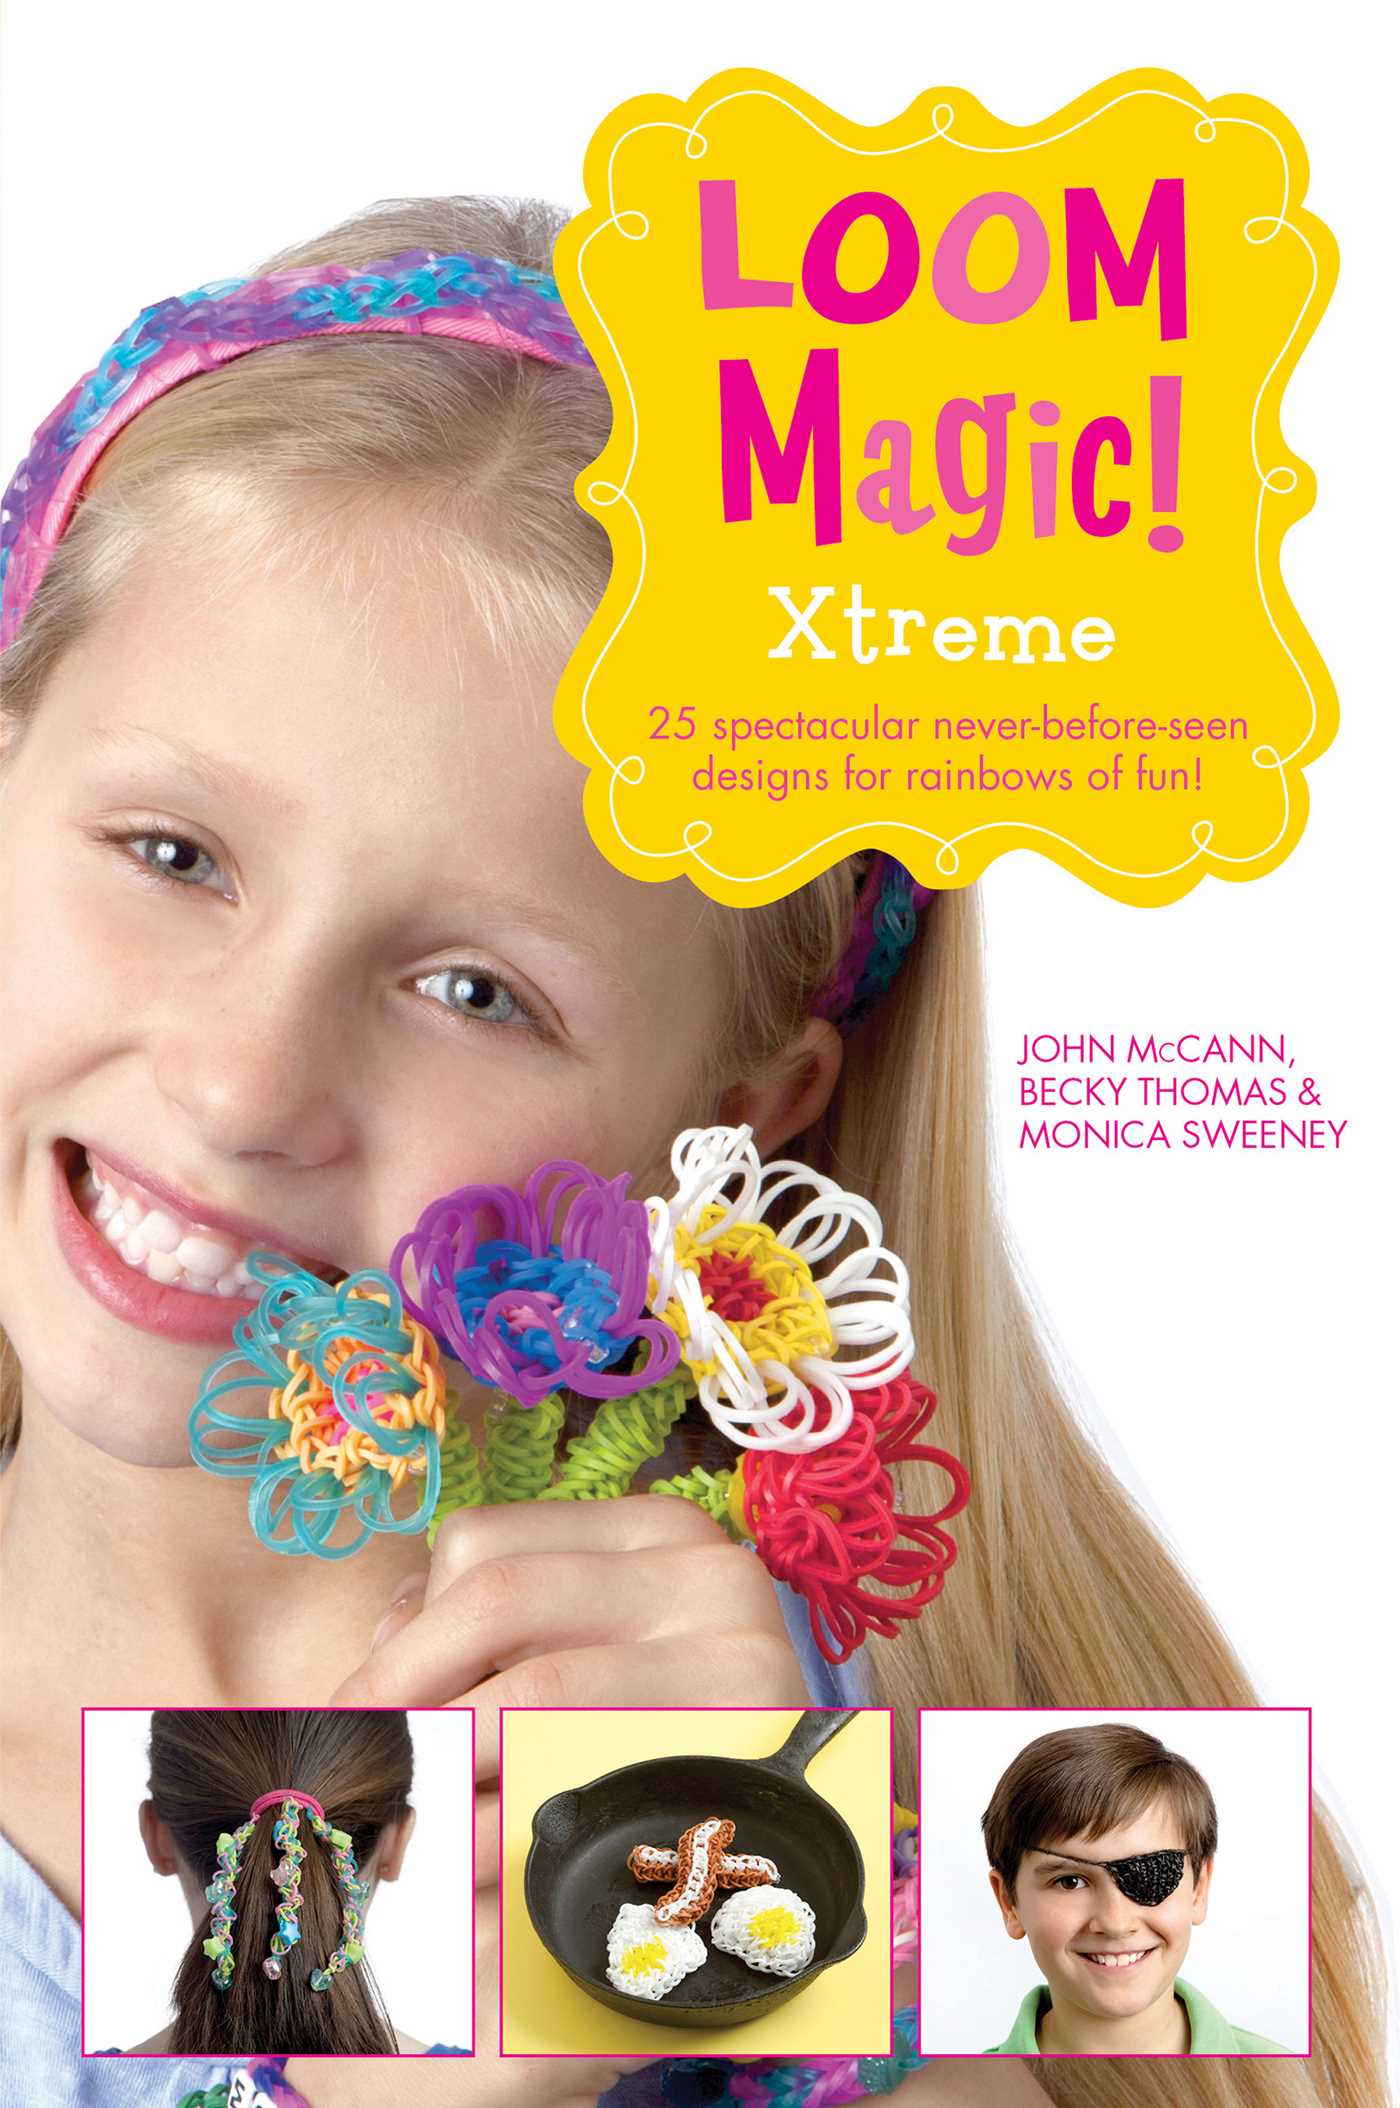 Loom magic xtreme 25 awesome never before seen designs for book cover image jpg loom magic xtreme 25 awesome never before seen designs for rainbows of fun ebook 9781471124525 fandeluxe Choice Image